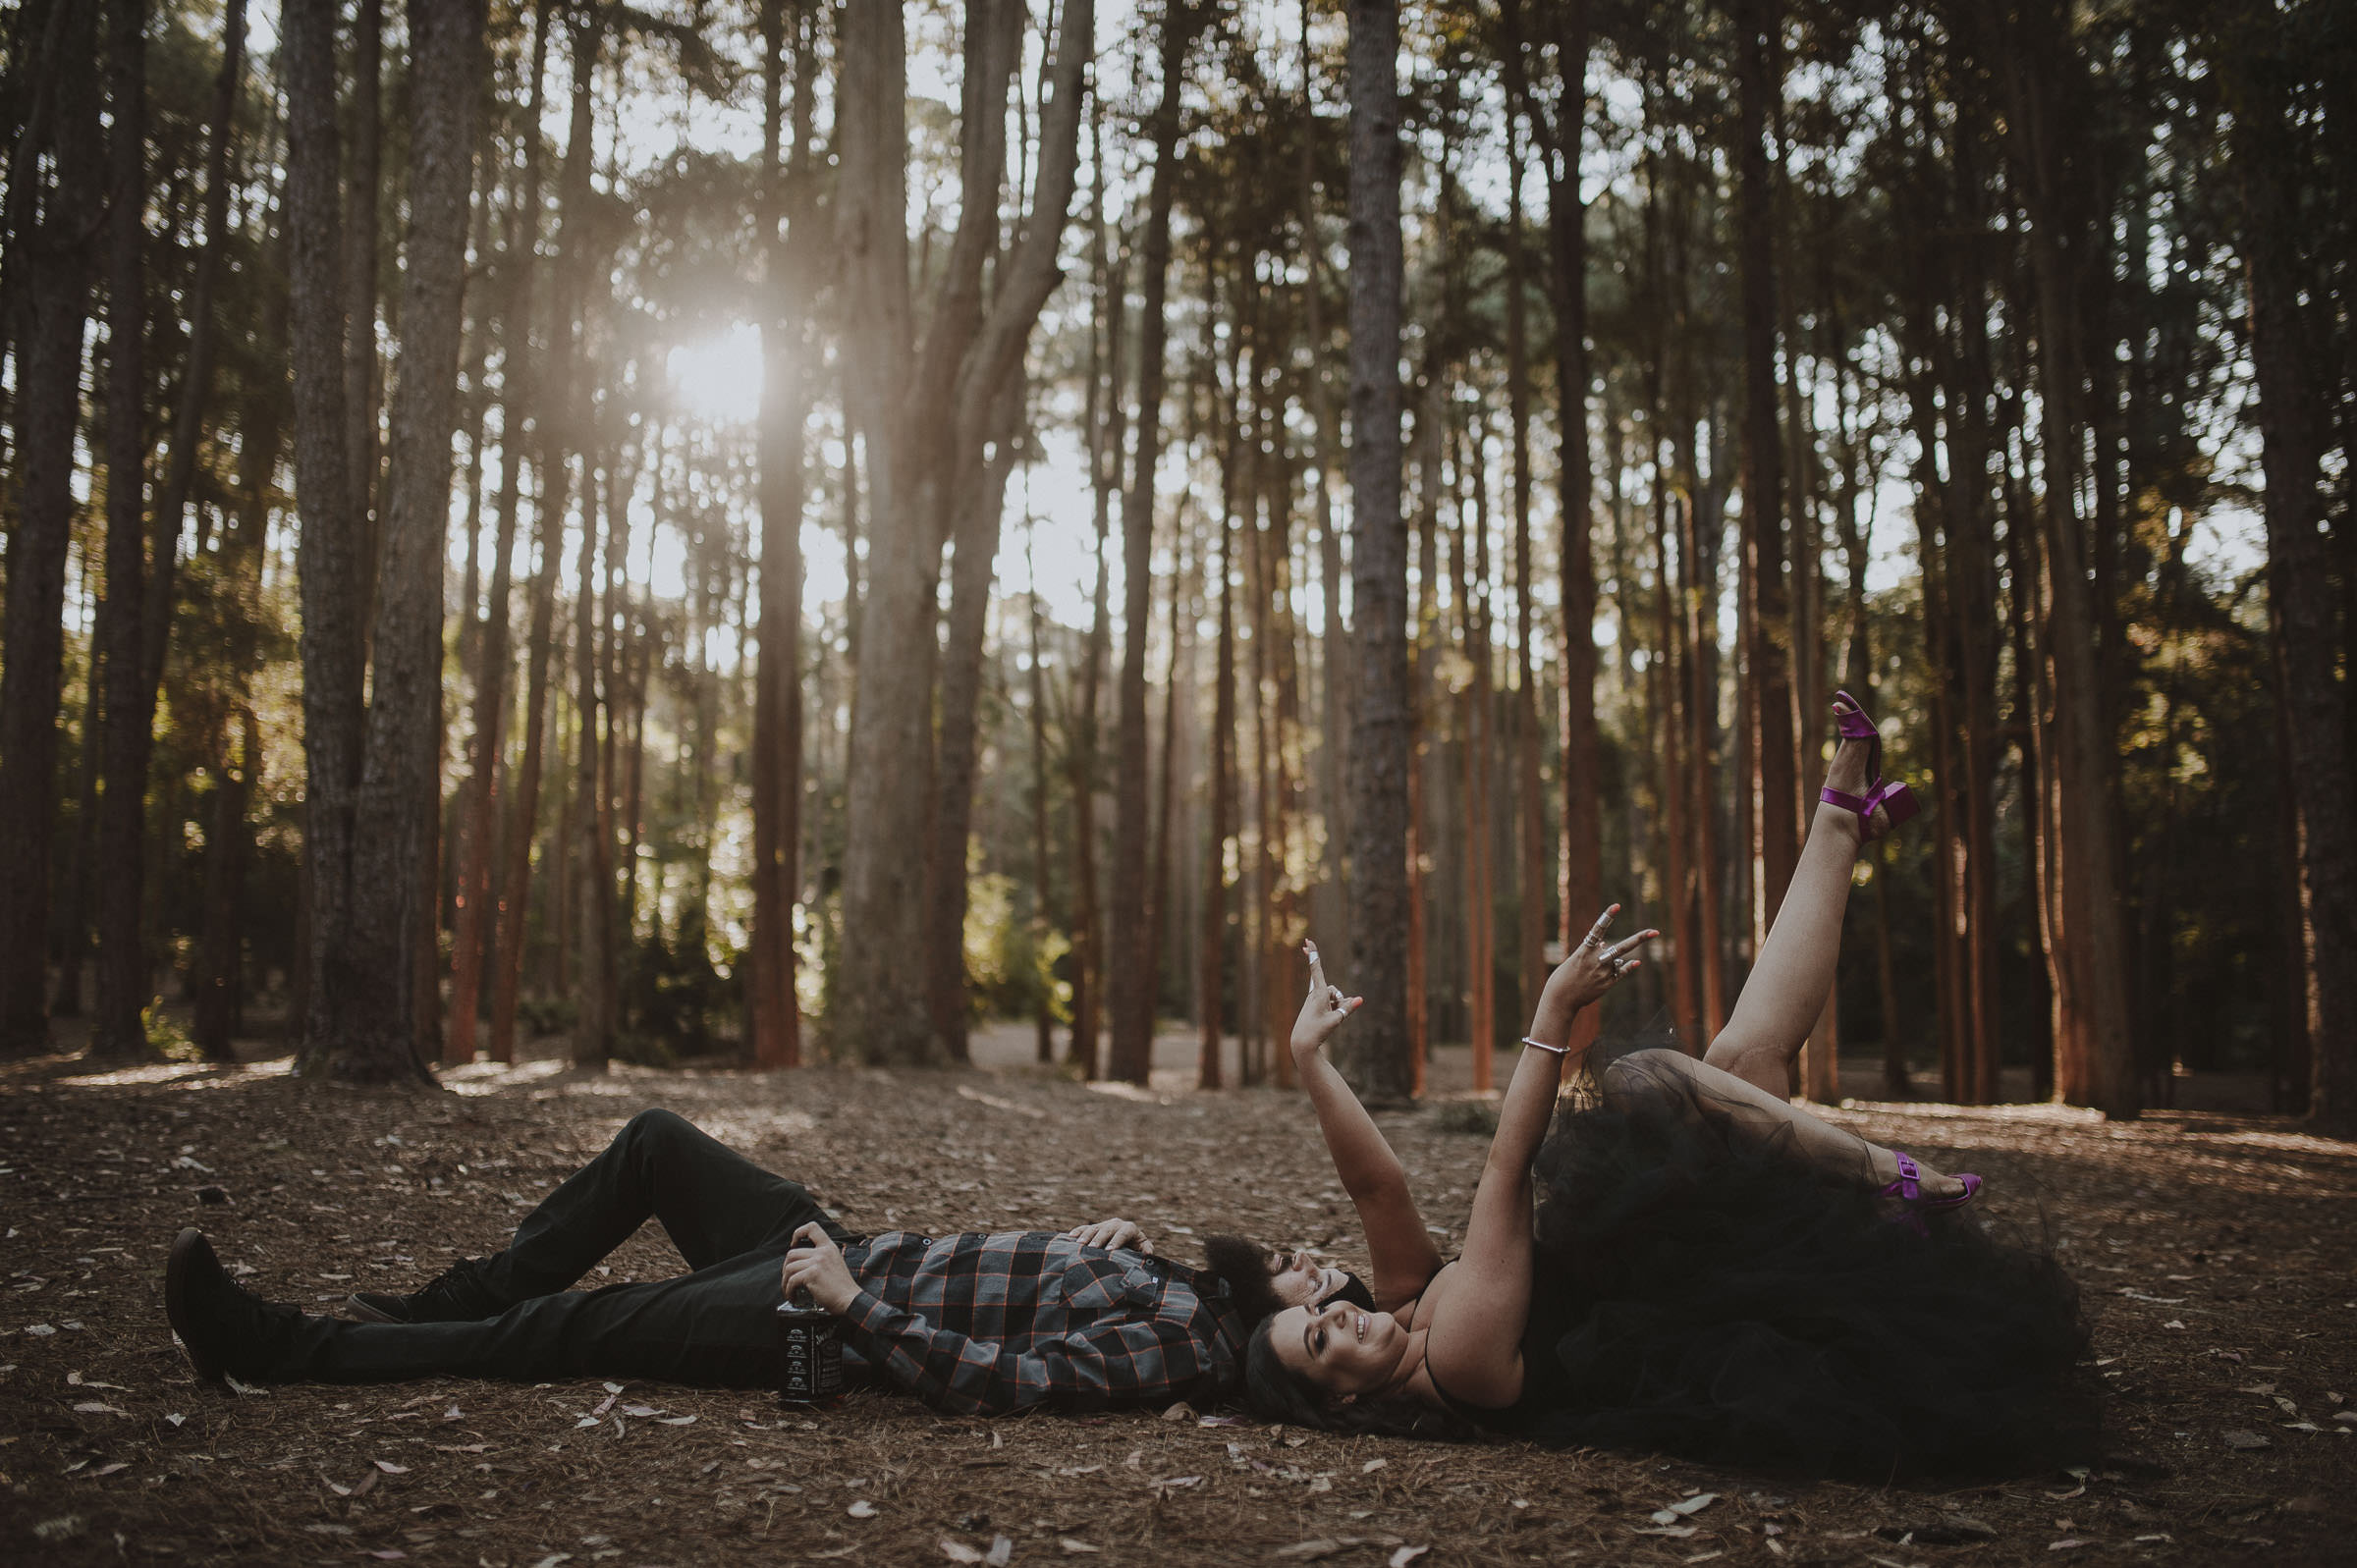 Madeline_Jamie_Watagens_Pine_Forest_Engagement_Shoot_Blog-26.jpg